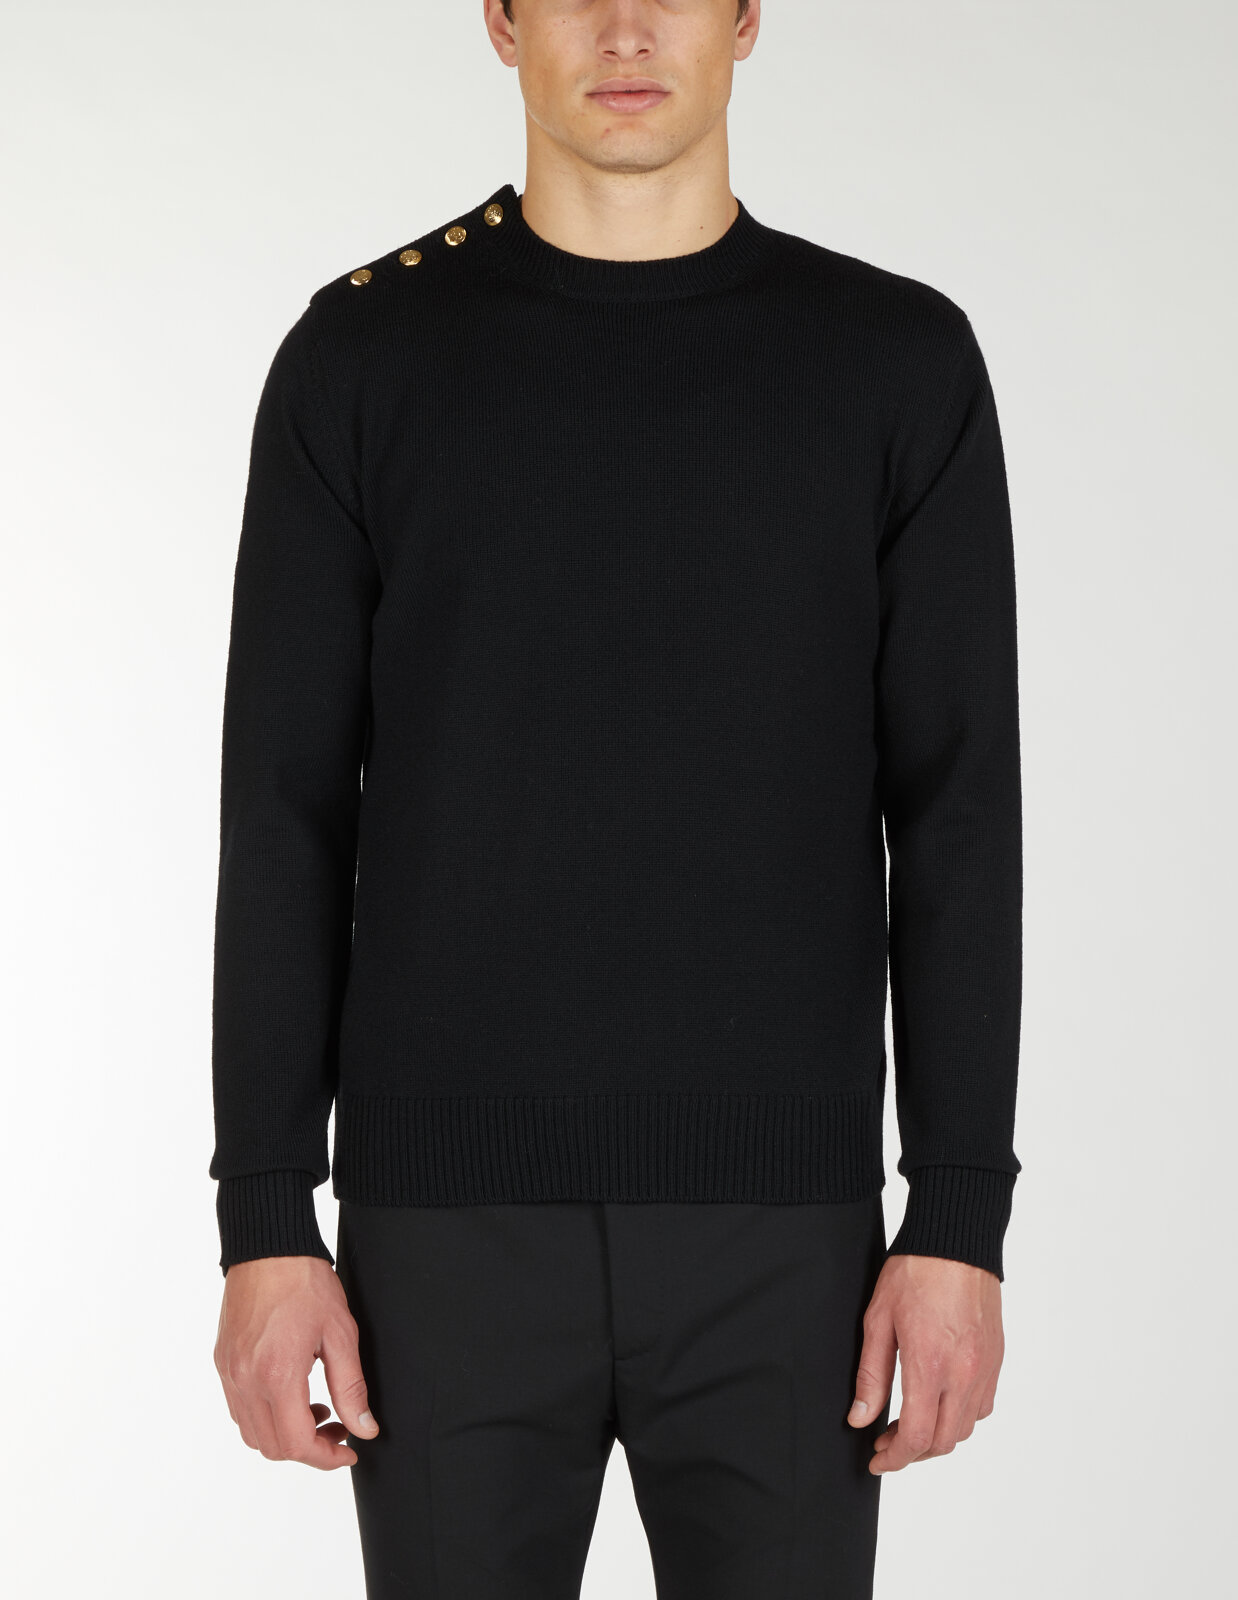 Round Neck Sweater With Buttons On Shoulder - Les Hommes